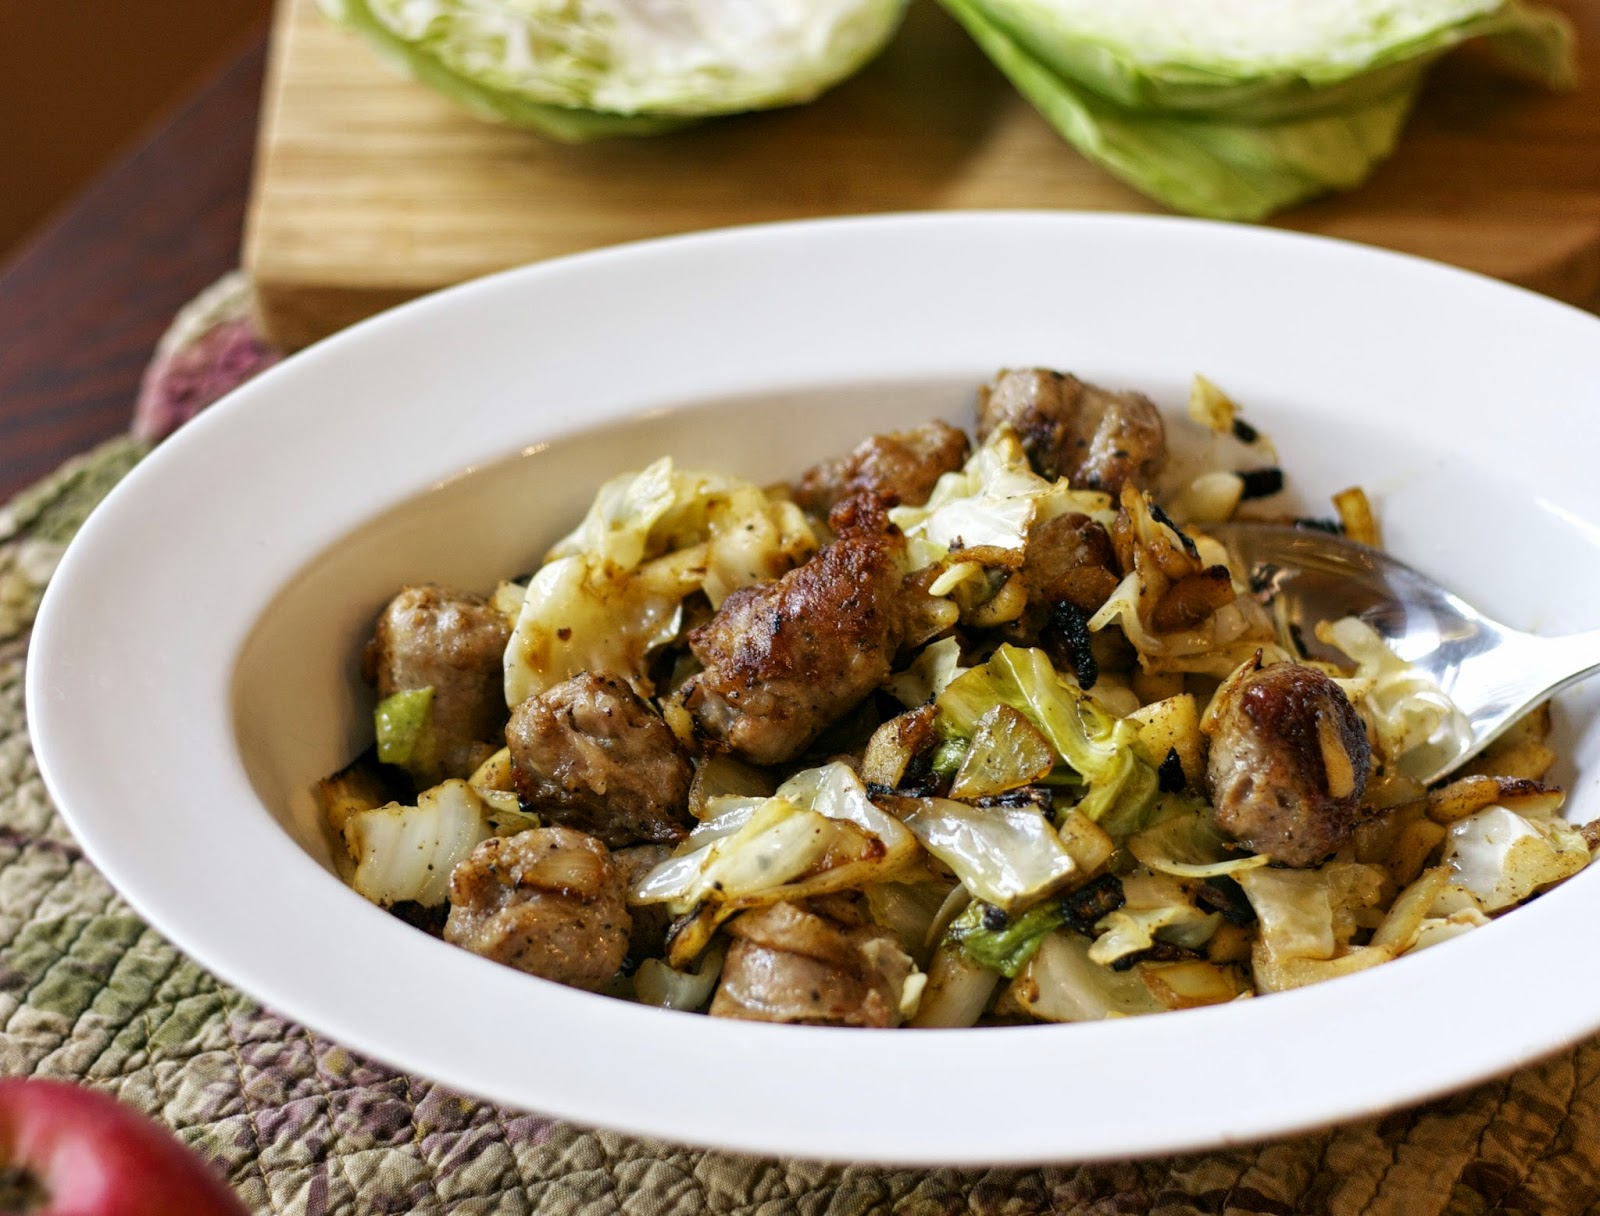 Sautéed Cabbage Apples & Sausage-simplelivingeating.com